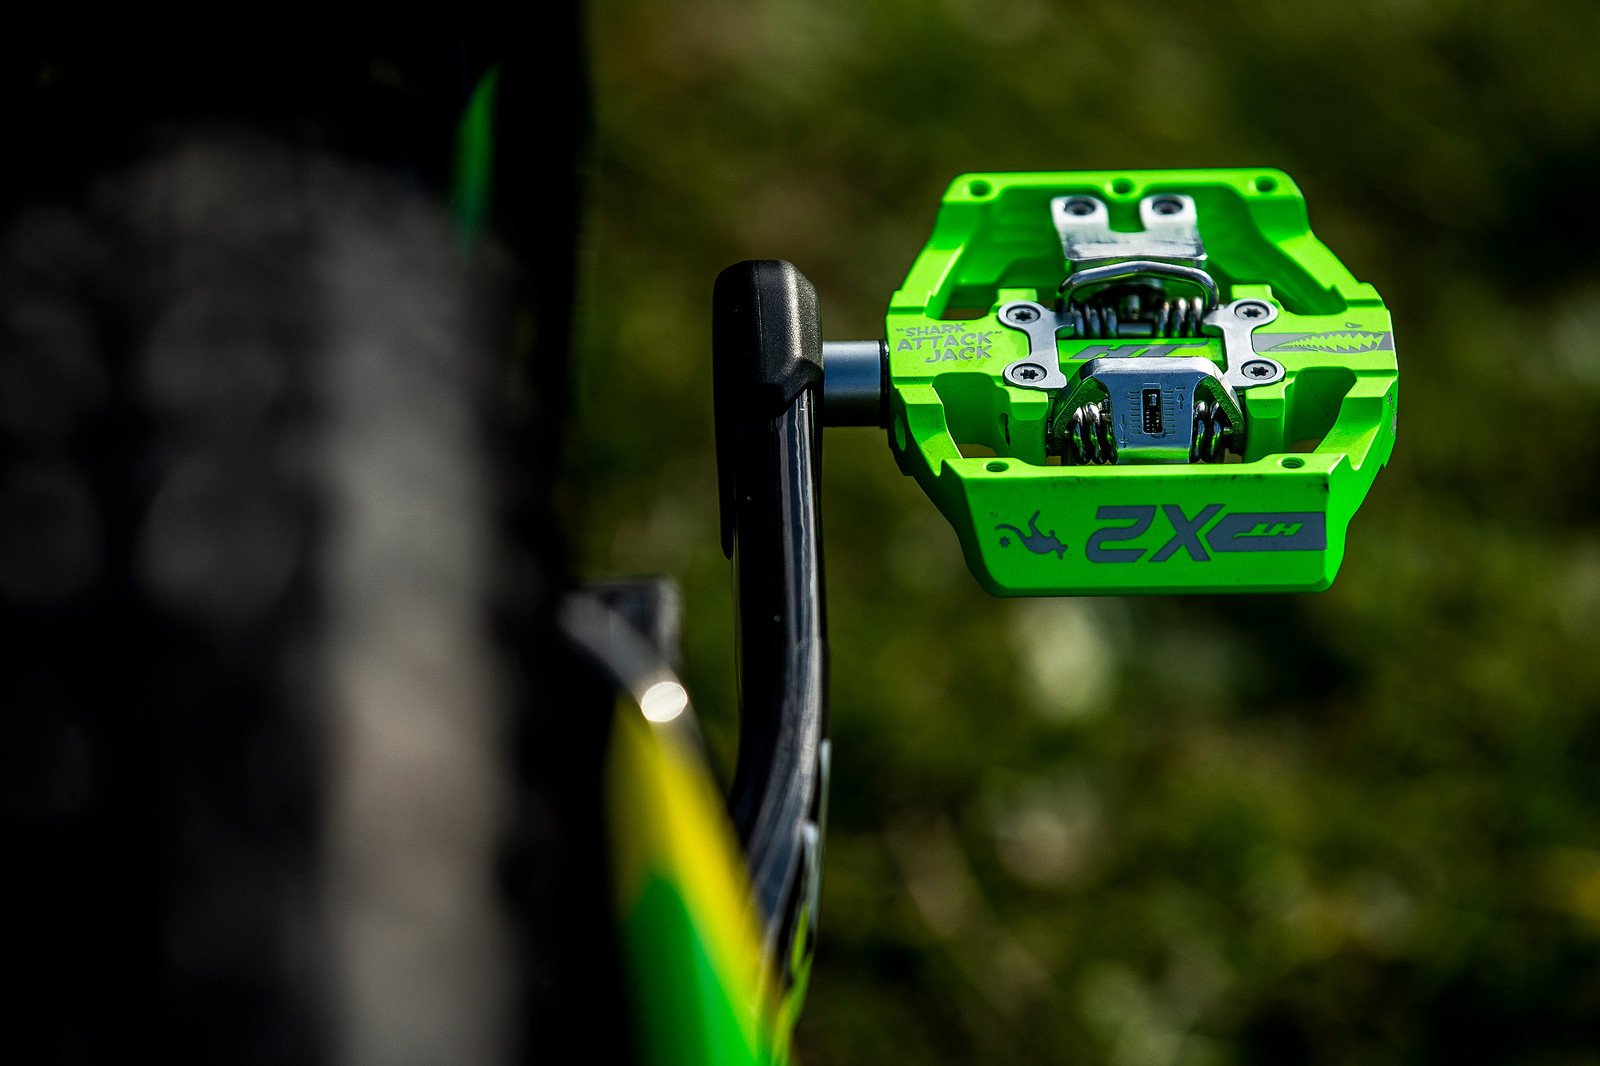 HT Pedals - WORLD CHAMPS BIKE - Jack Moir's Intense M29 - Mountain Biking Pictures - Vital MTB